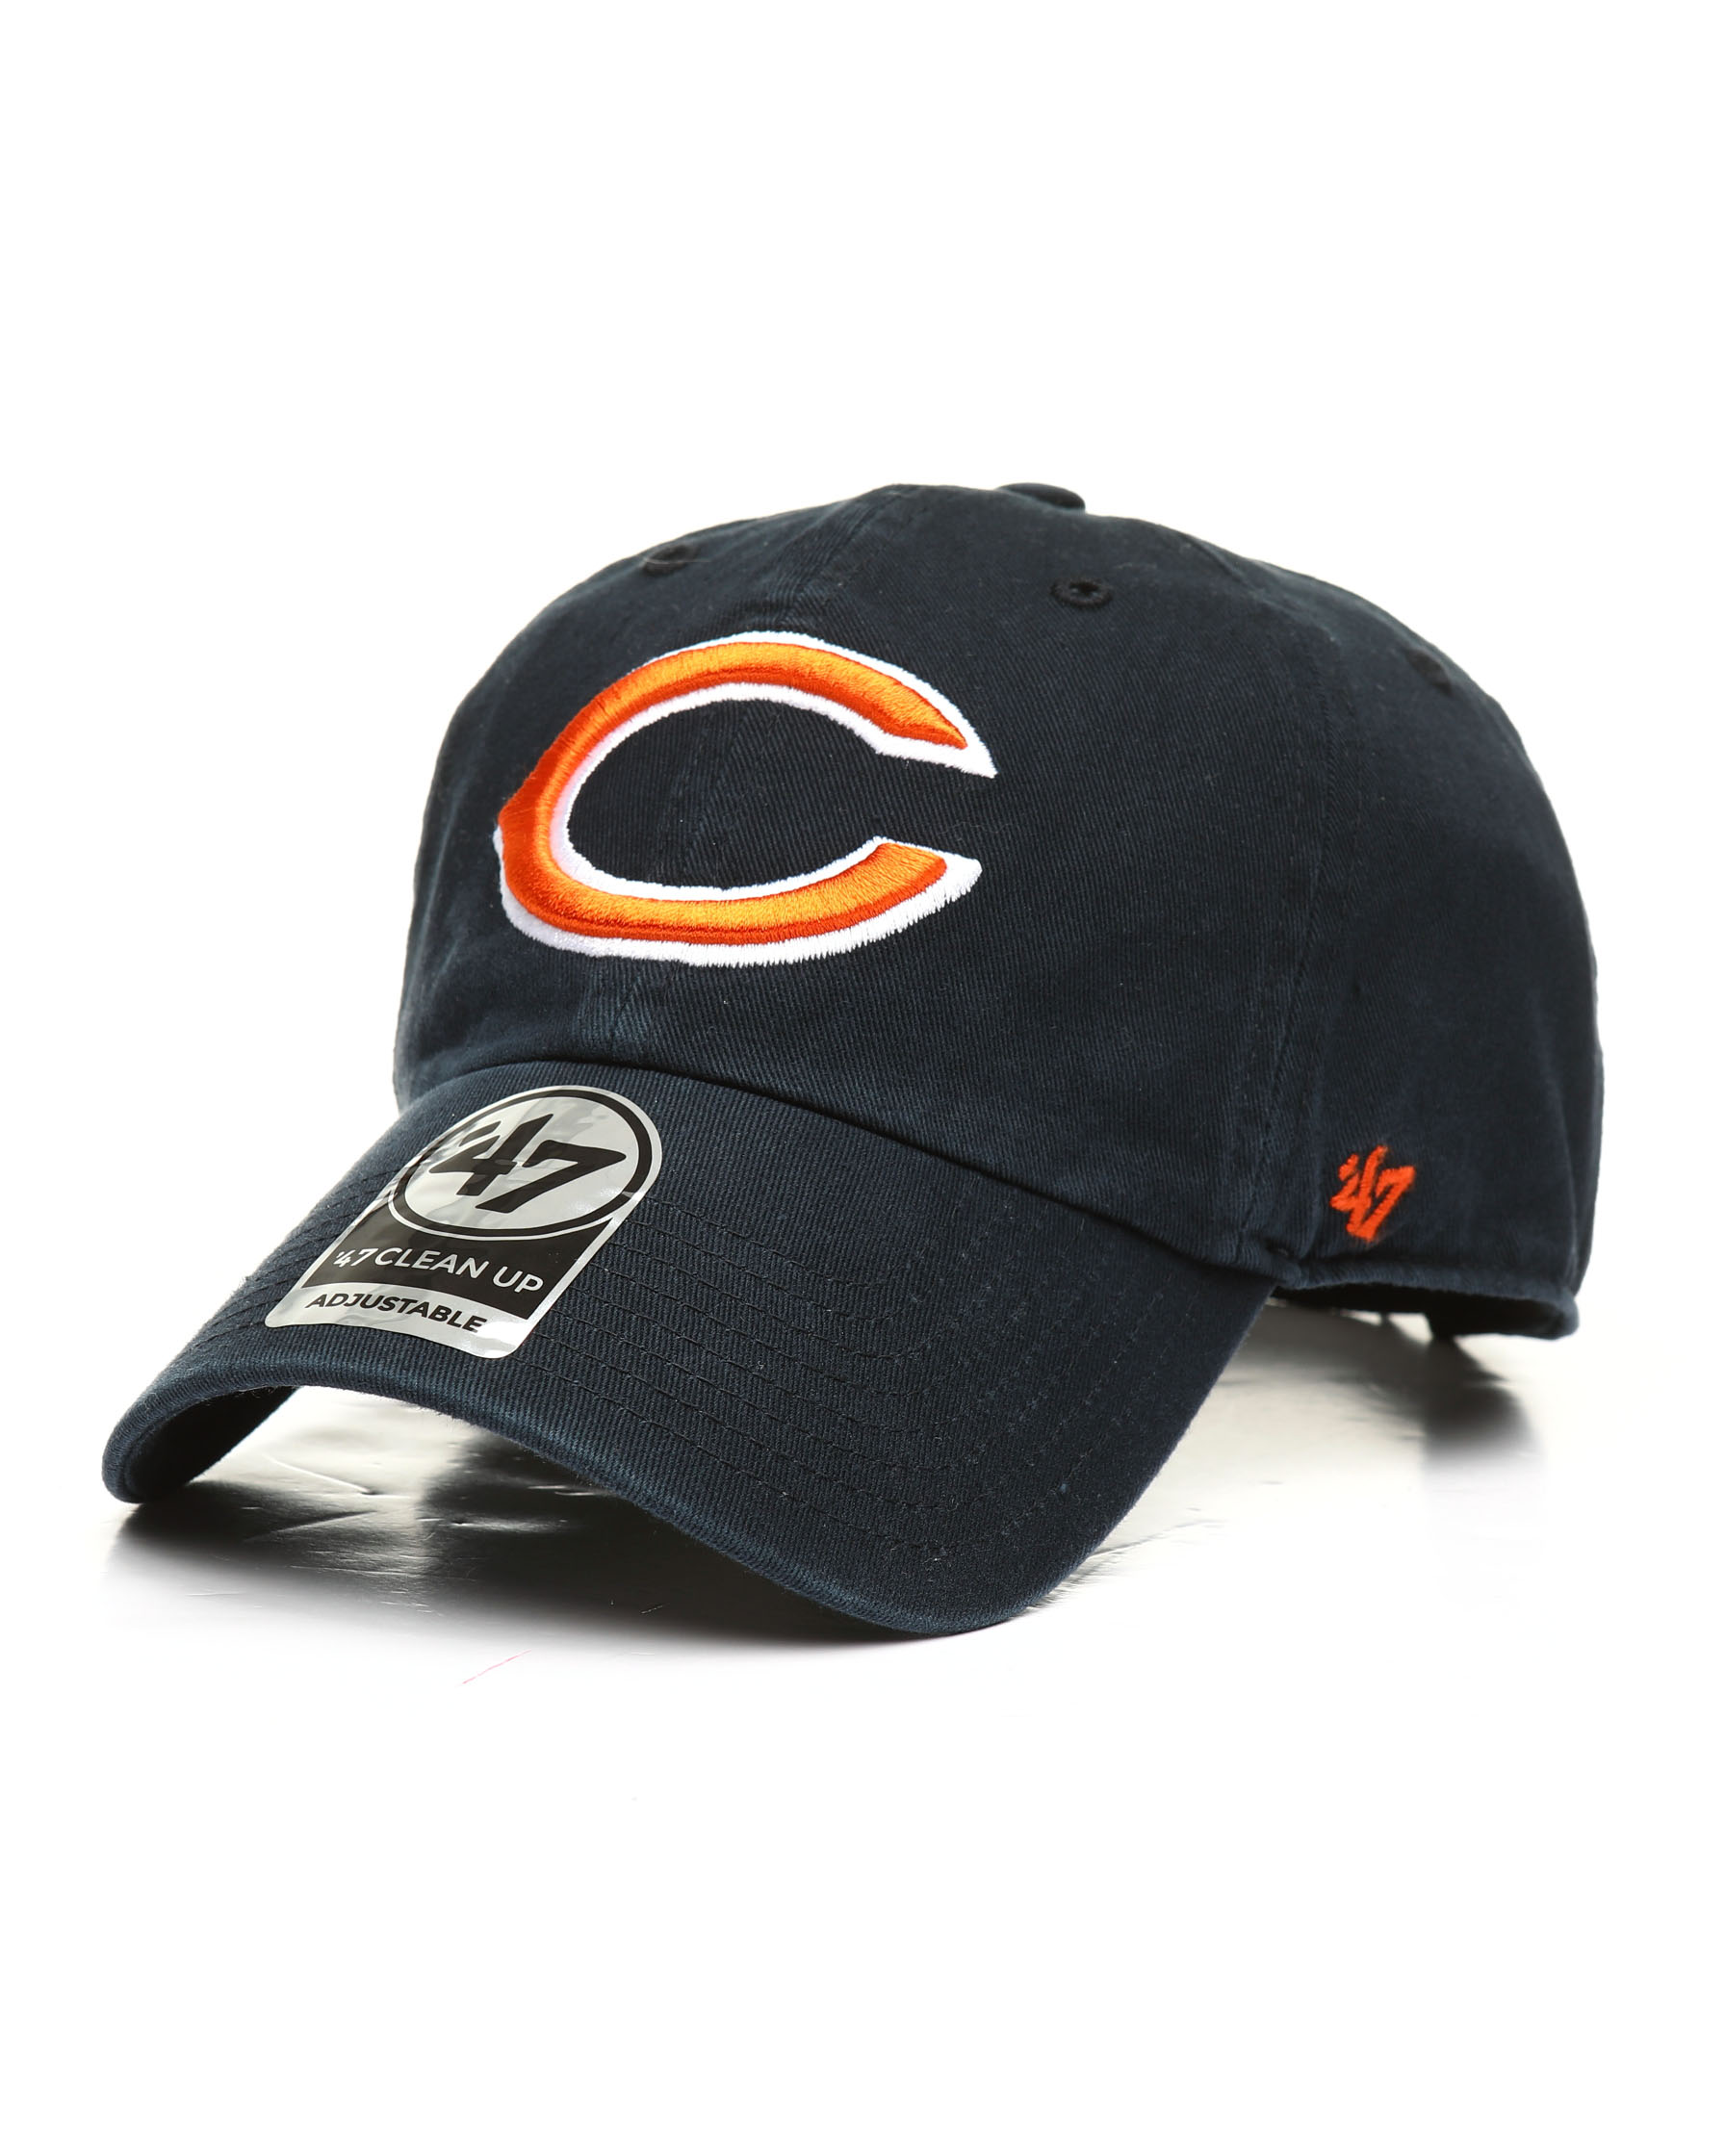 067dab5e Buy Chicago Bears Clean Up Strapback Cap Men's Hats from '47. Find ...